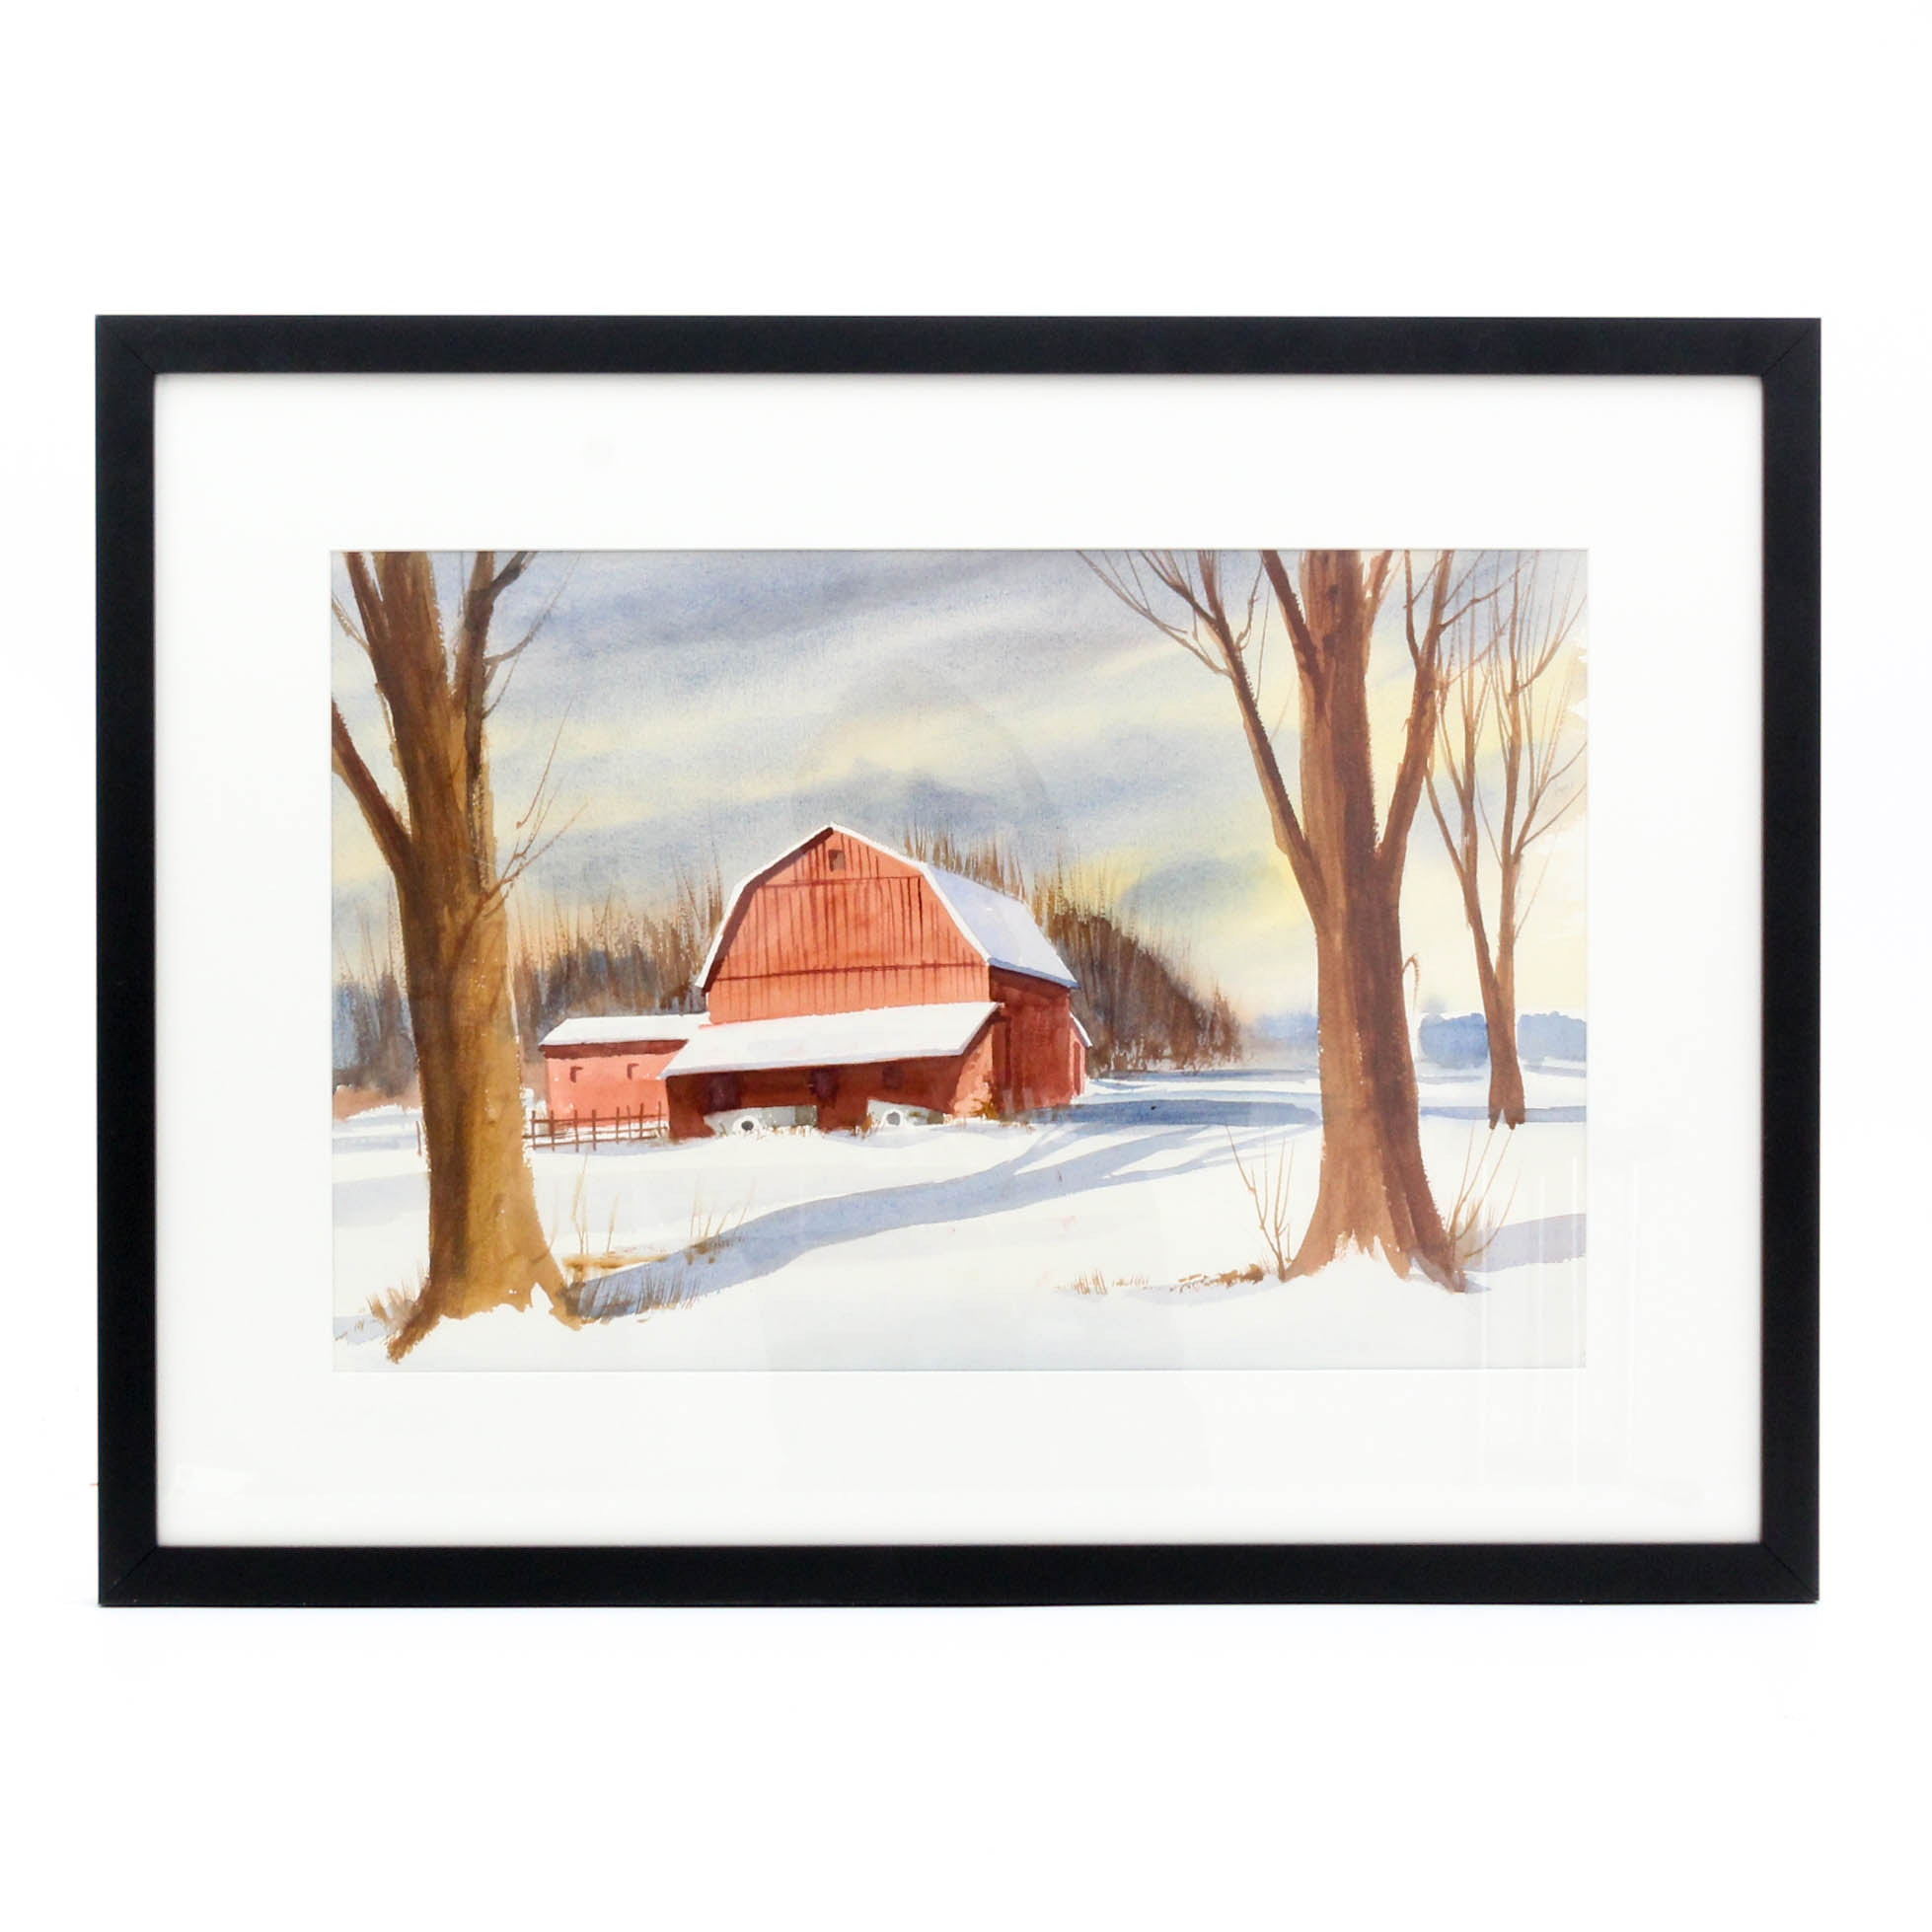 James DeVore Large Watercolor Painting Depicting a Barn